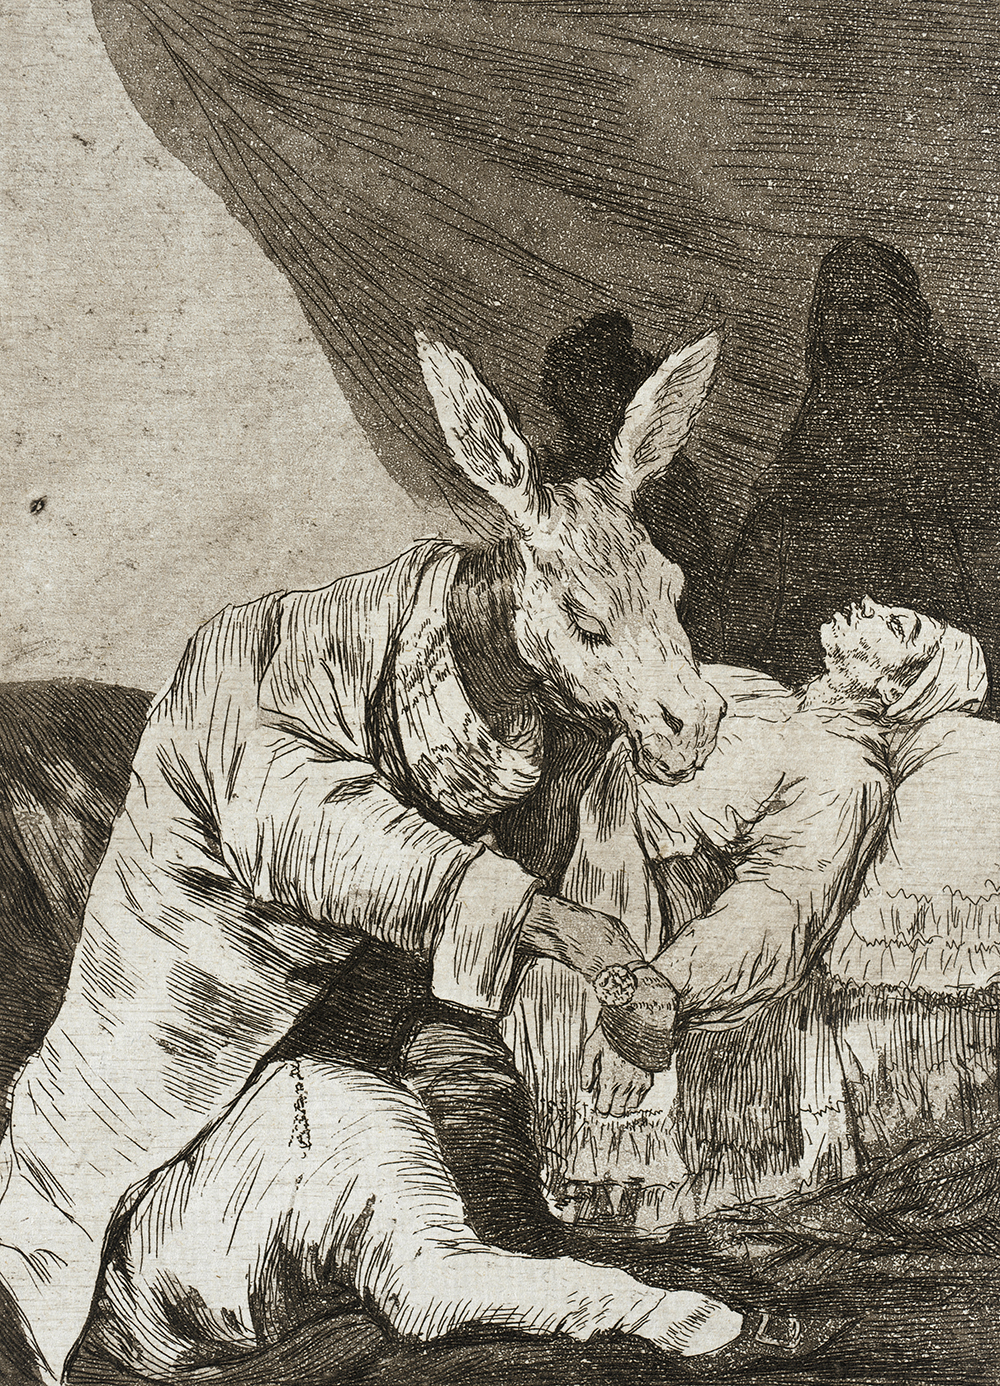 Of What Ill Will He Die?, by Francisco Goya, 1799